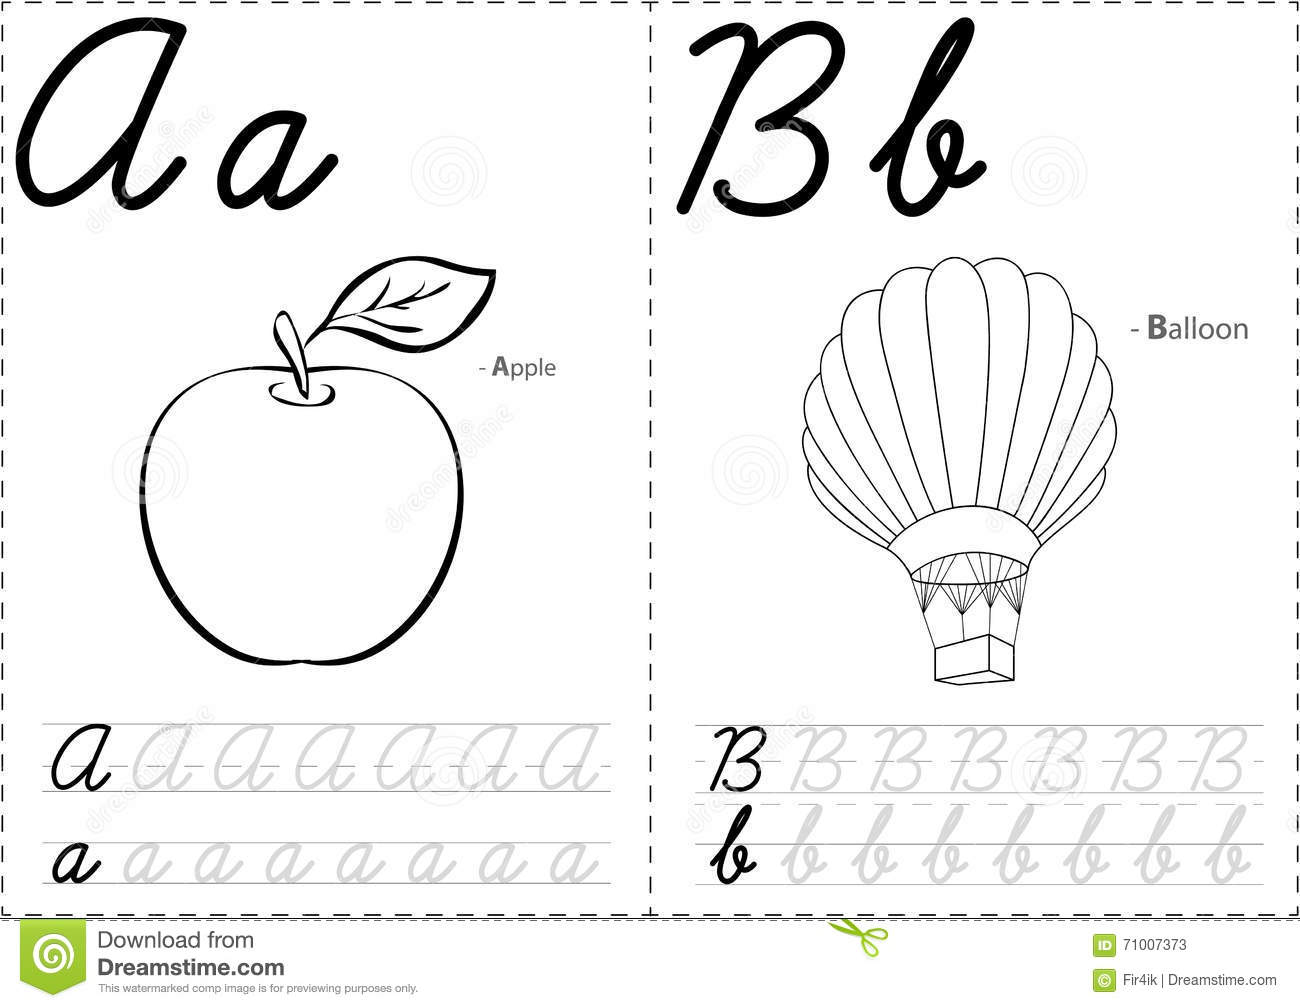 Balloon Alphabet Vector Illustration